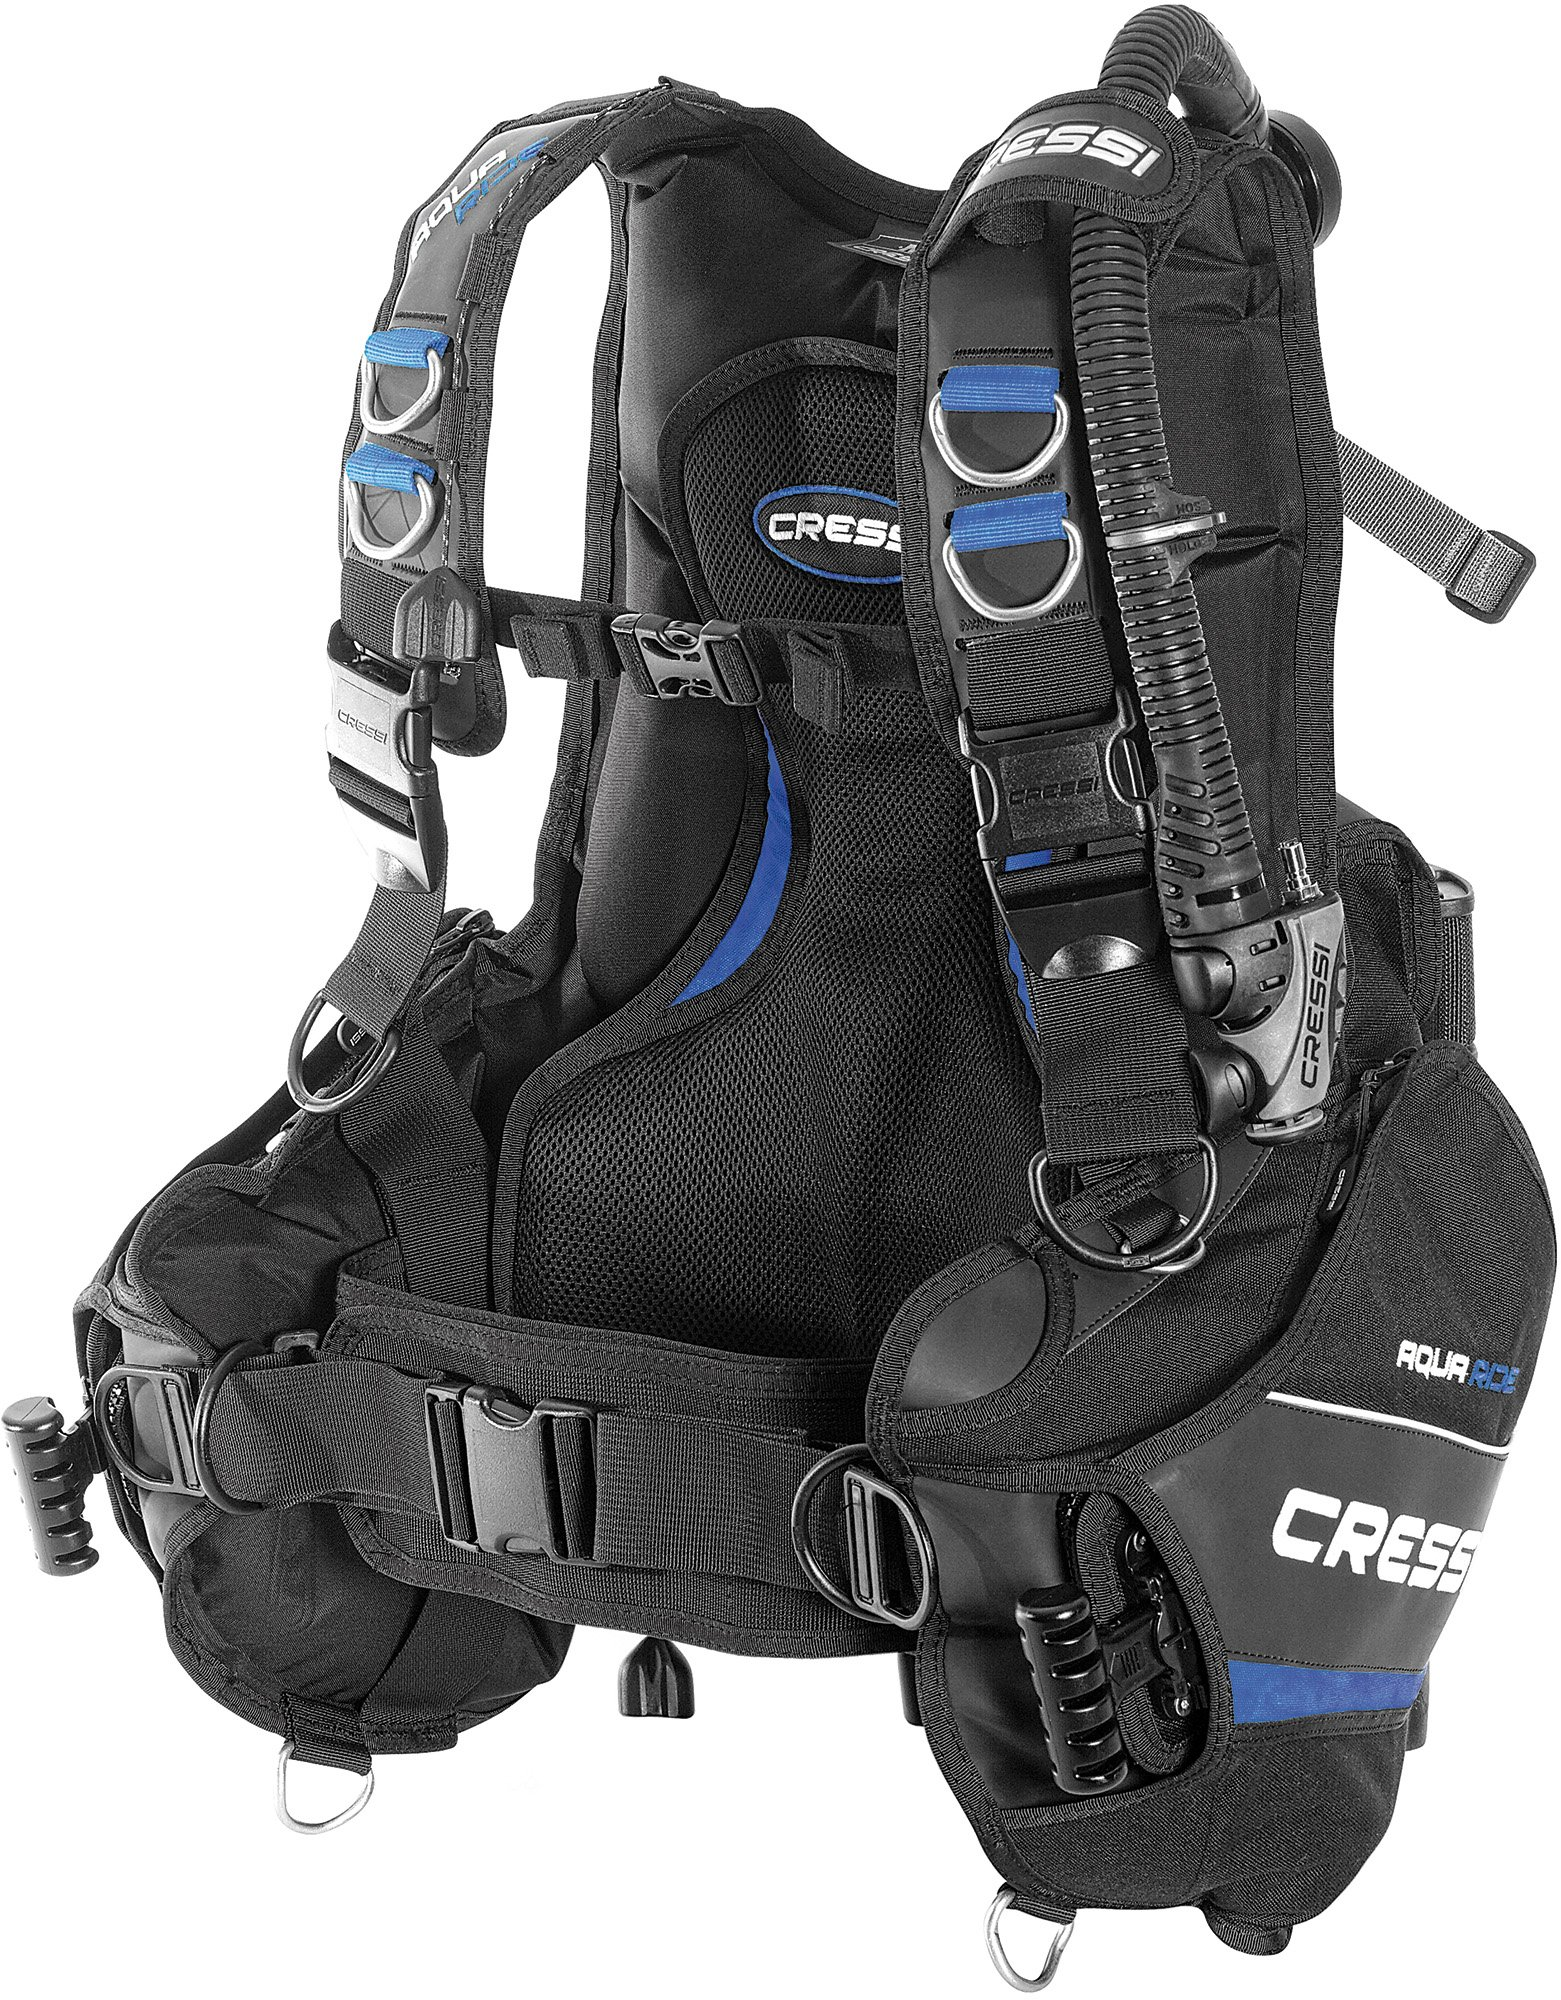 Cressi Aquaride Pro, Buoyancy Compensator Device Blue, made in Italy (X-Small)